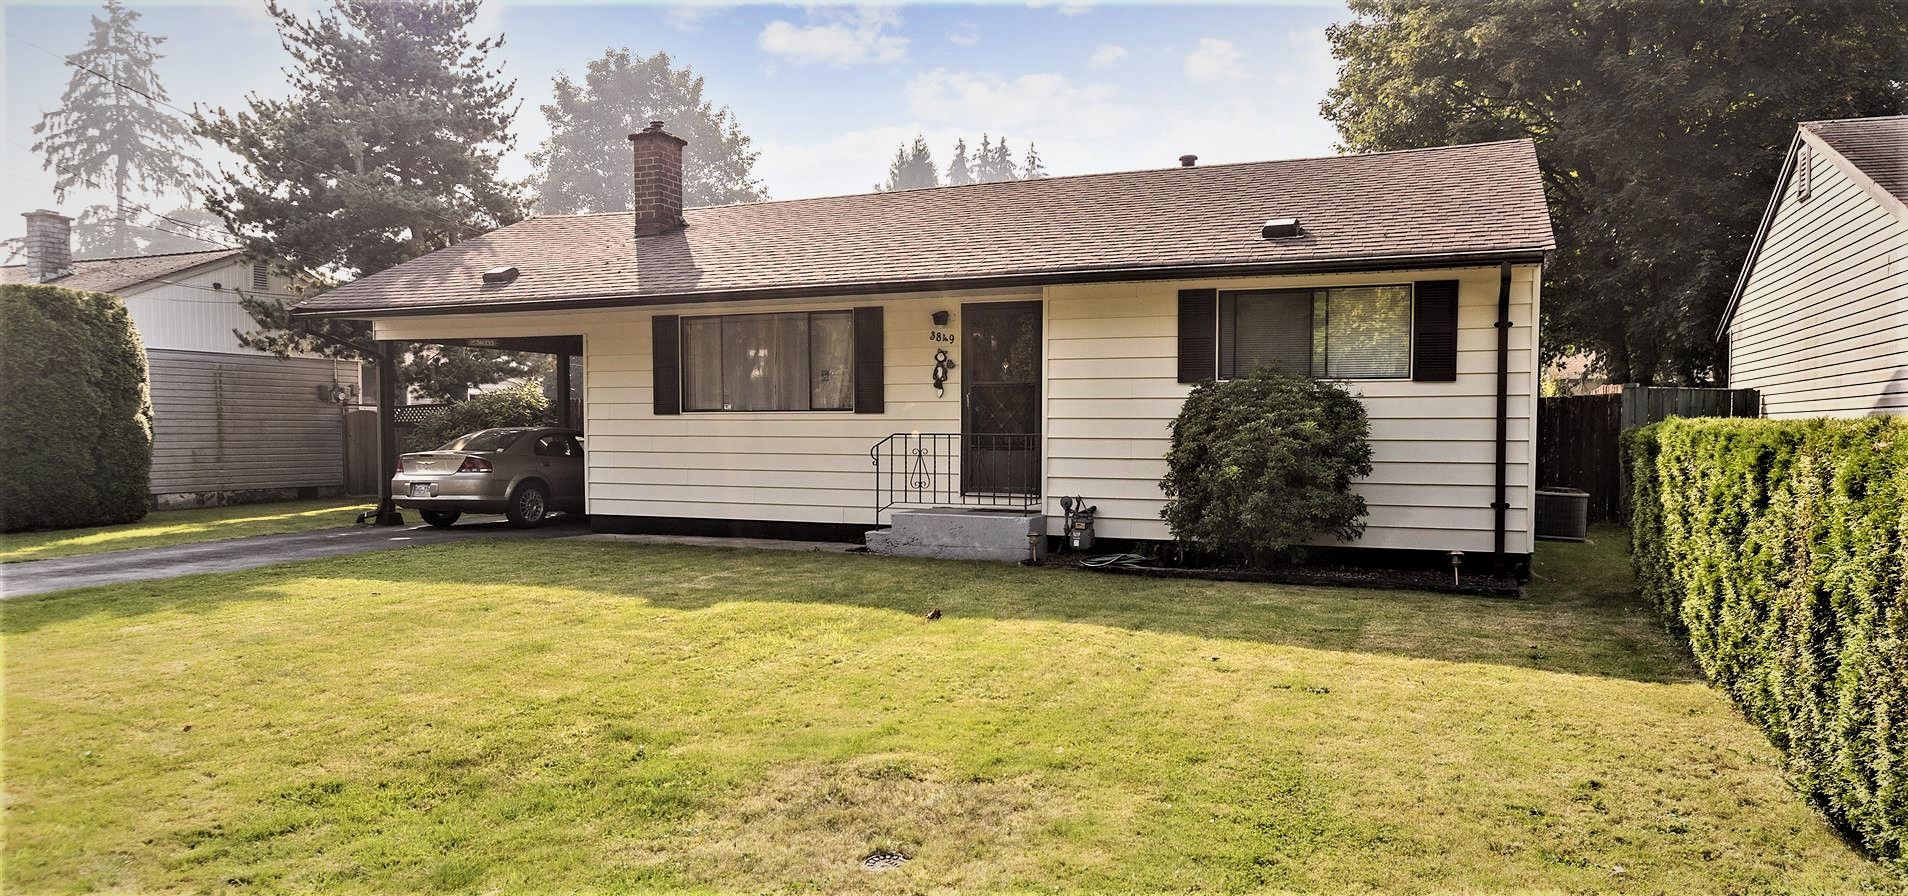 """Main Photo: 3849 INVERNESS Street in Port Coquitlam: Lincoln Park PQ House for sale in """"Sun Valley"""" : MLS®# R2498419"""